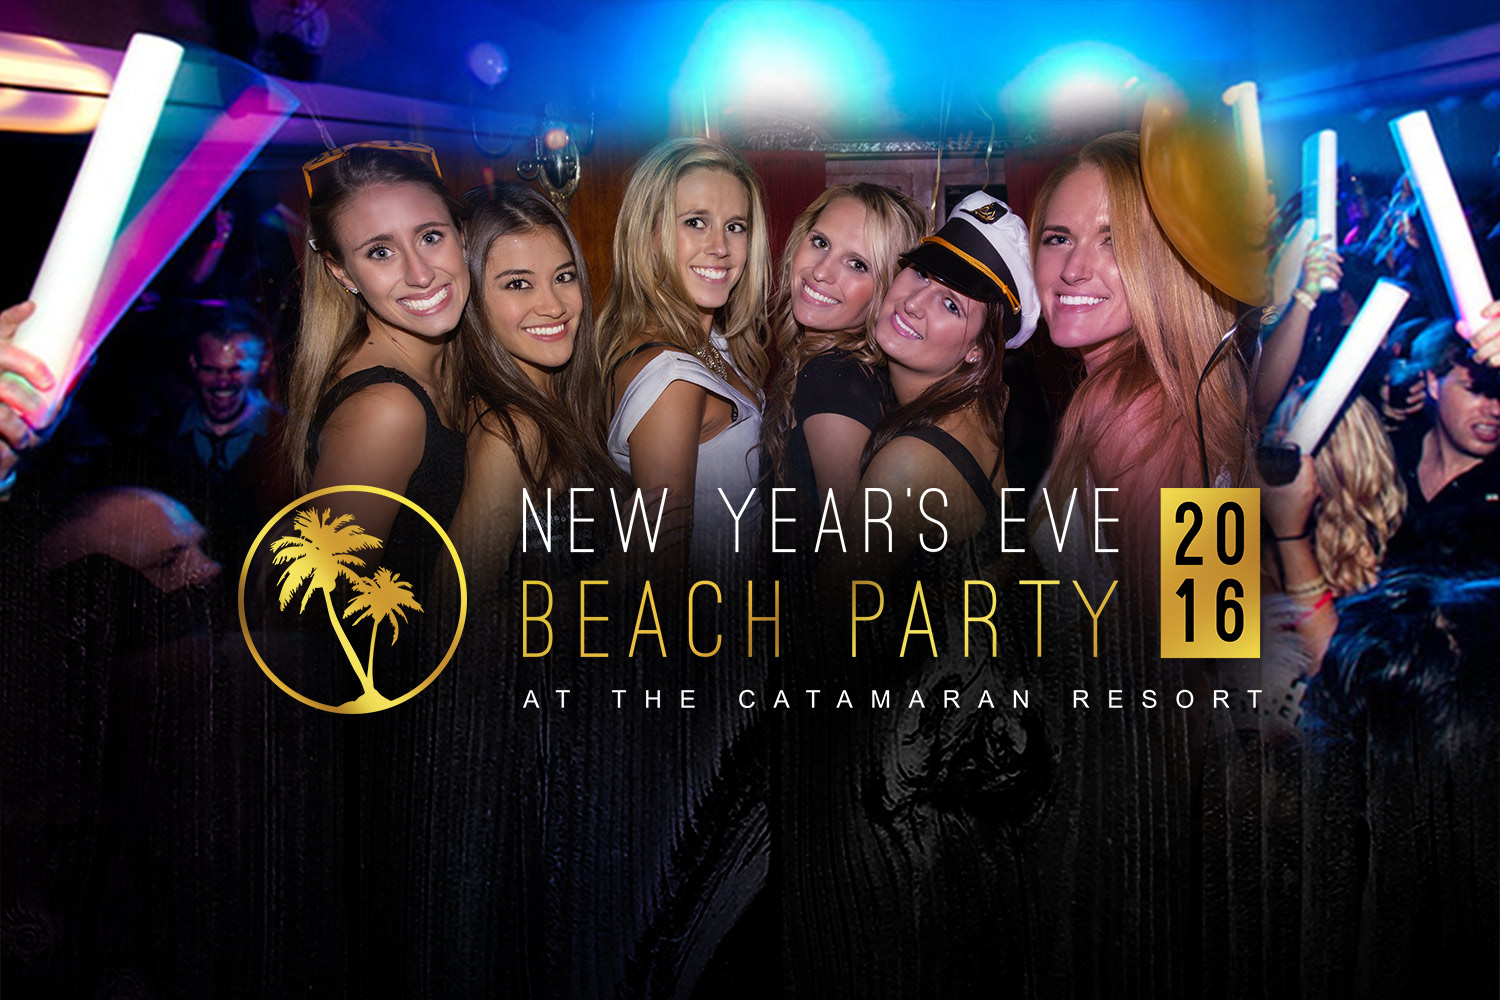 New Years Eve Party Catamaran Resort